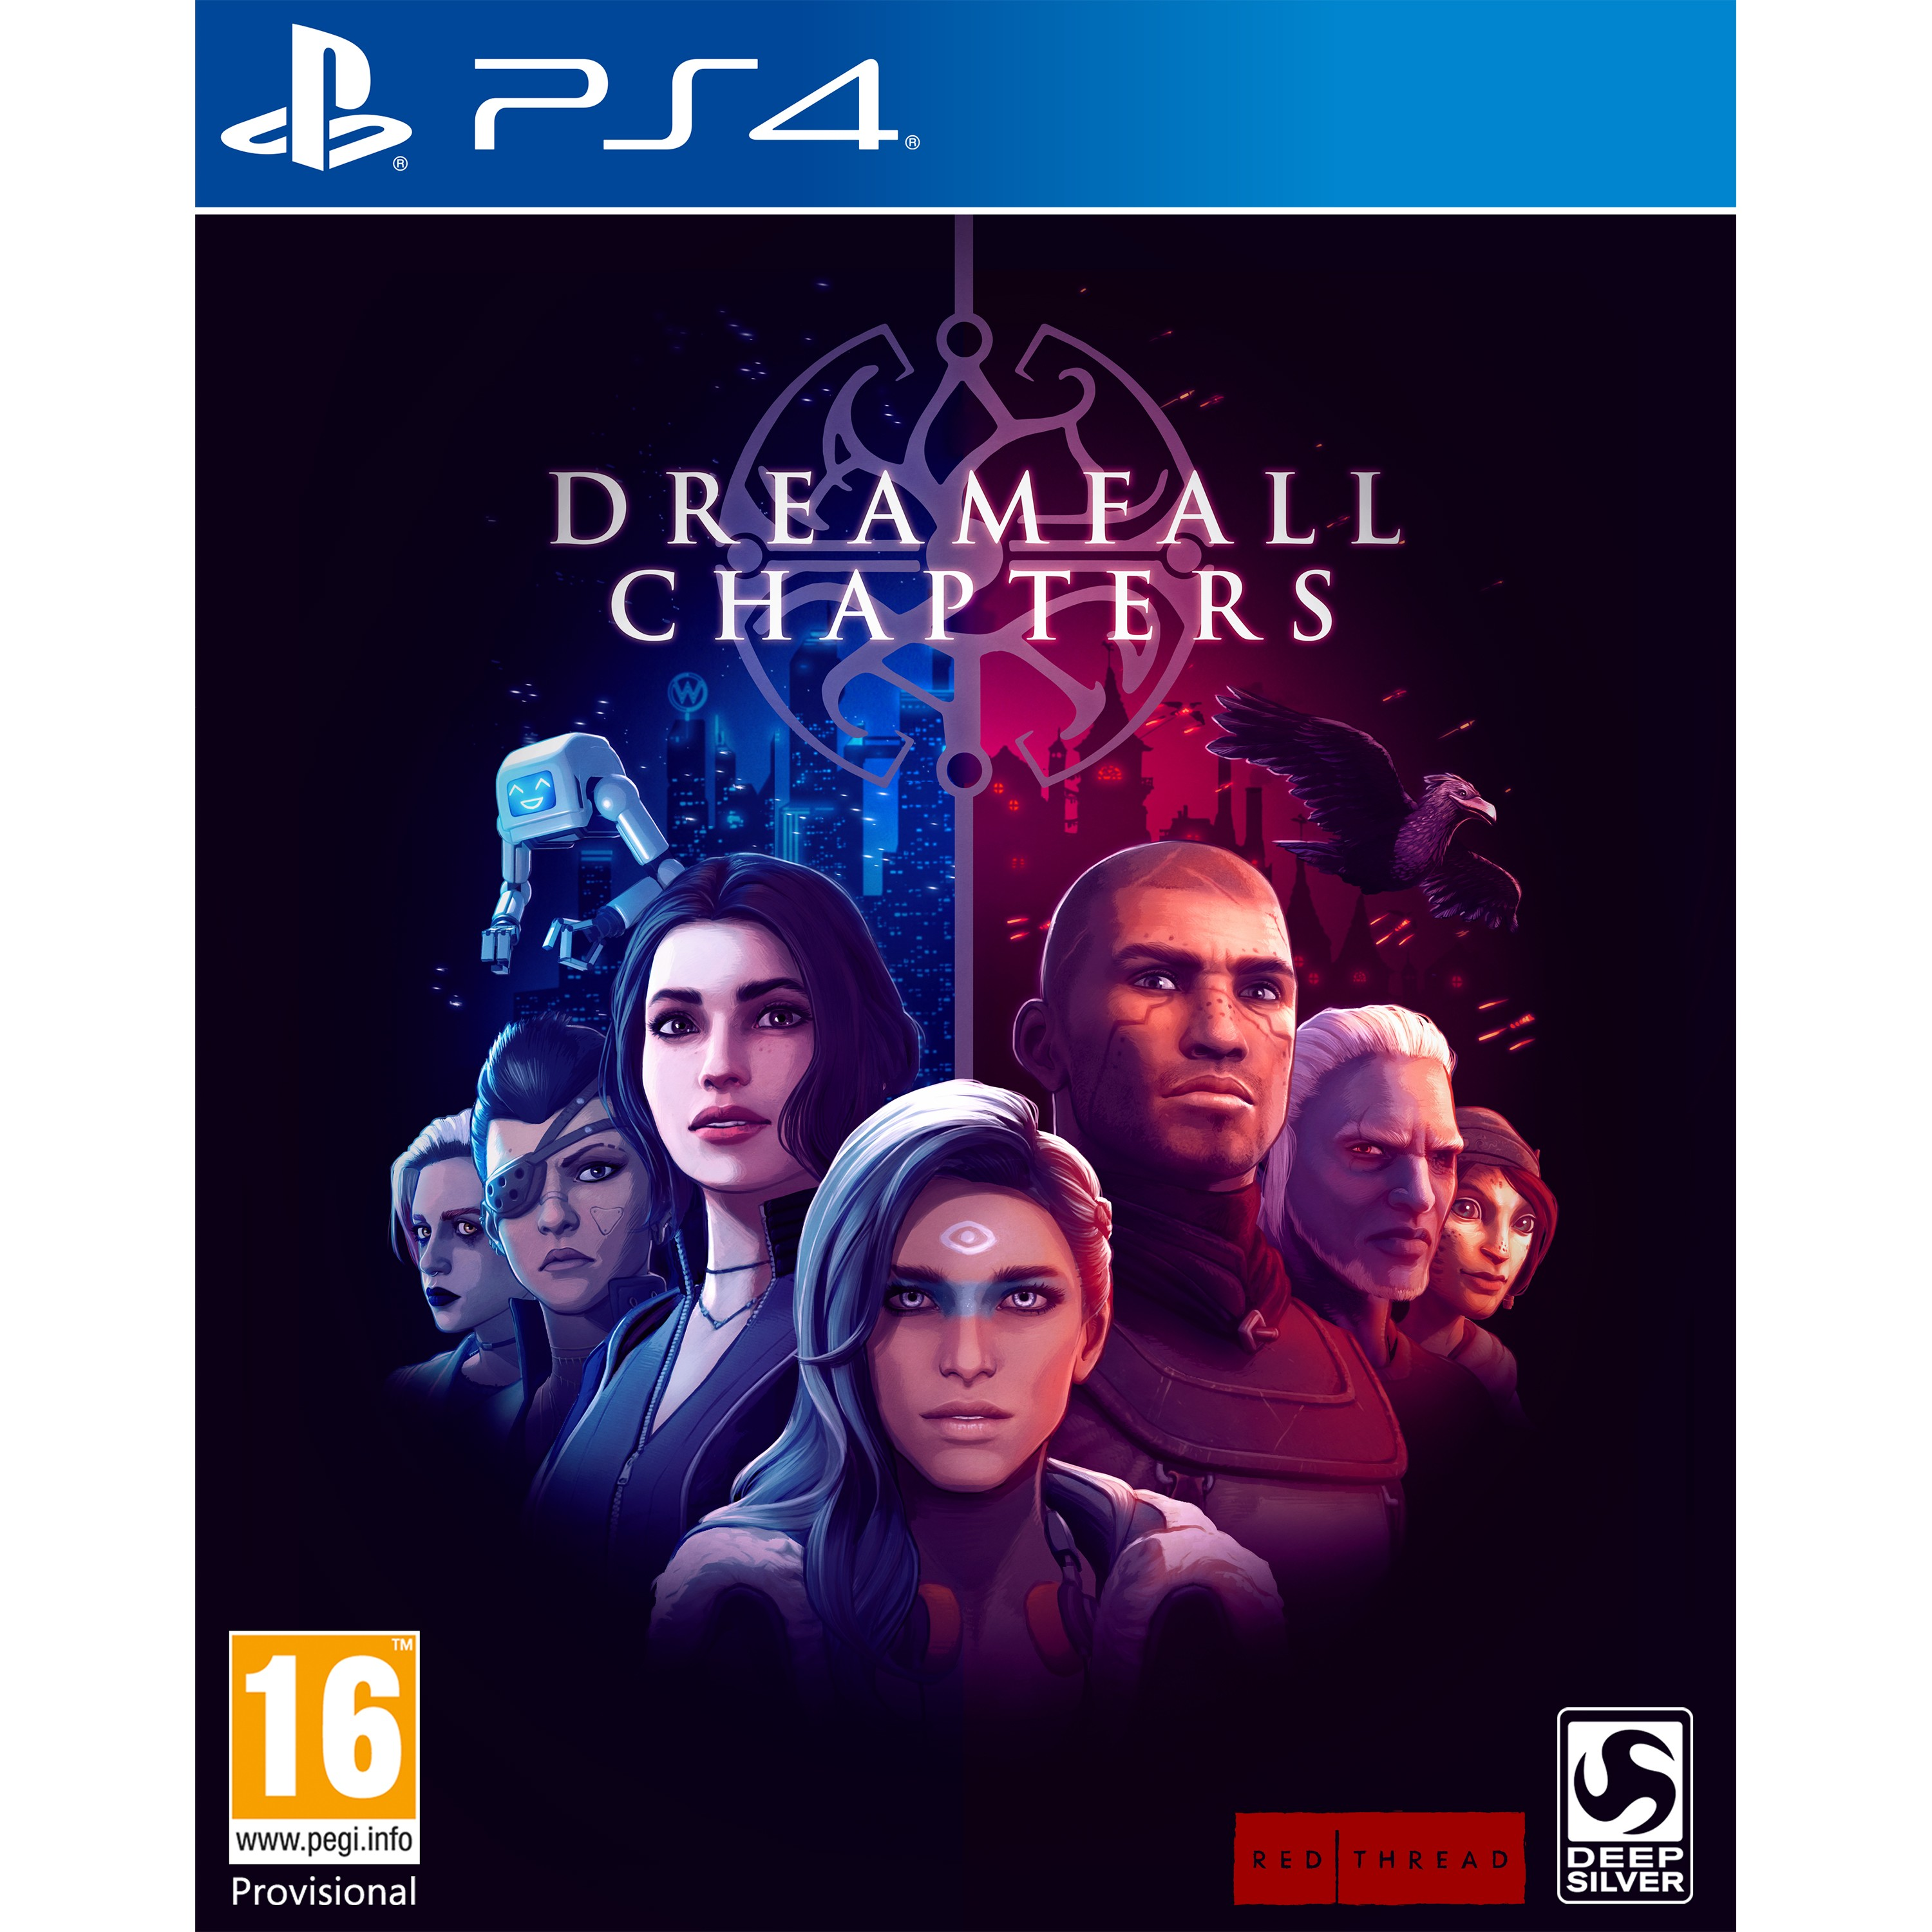 PS4DREAMFACH : Dreamfall Chapters (PS4)